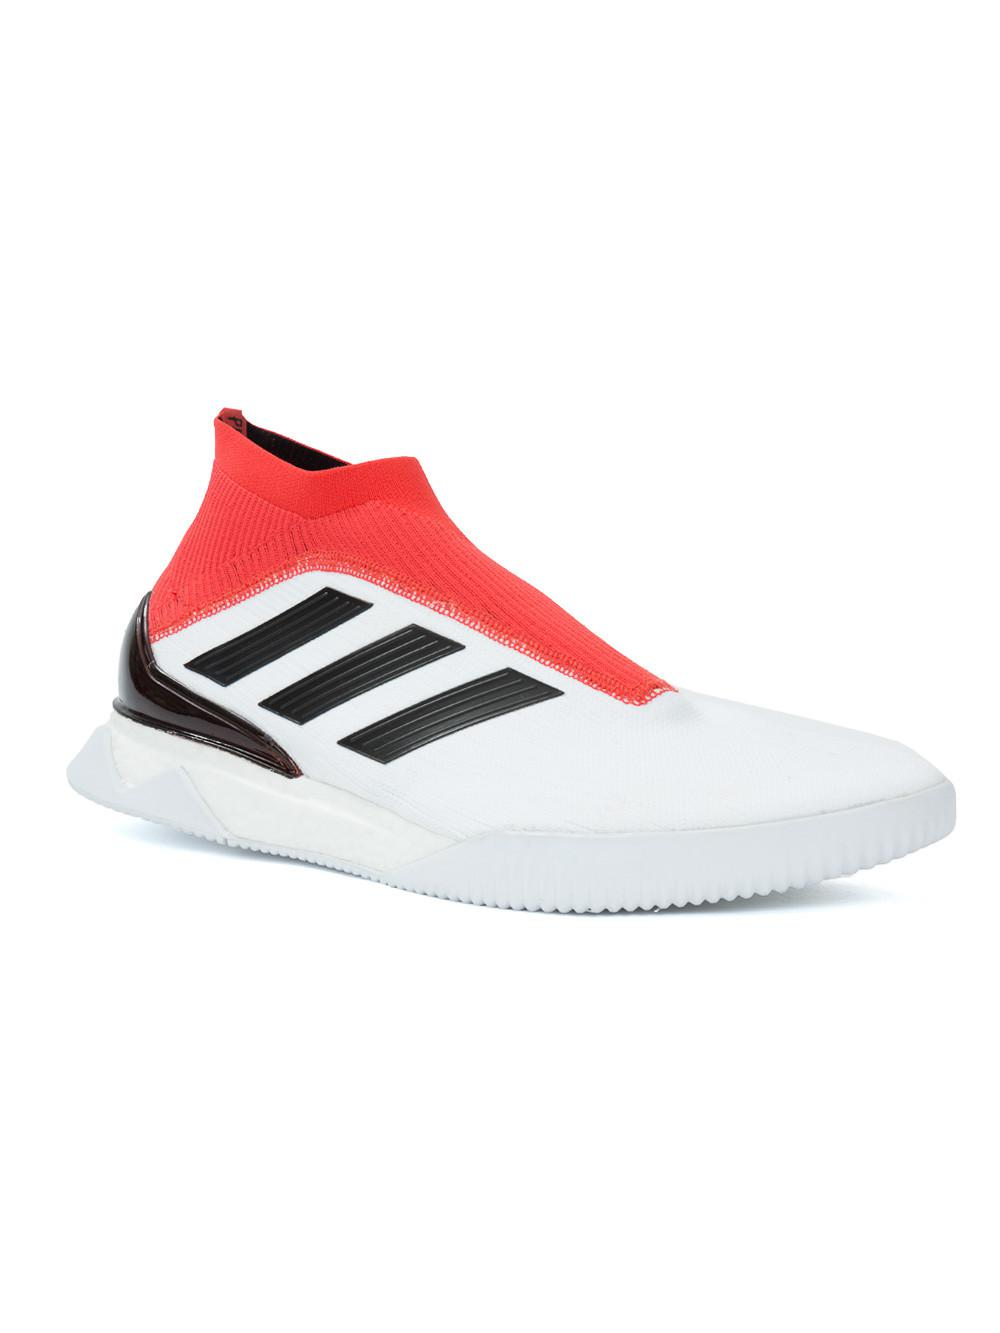 1e0d820f0651 Lyst - adidas Predator Tango 18+ Sock Sneakers in Red